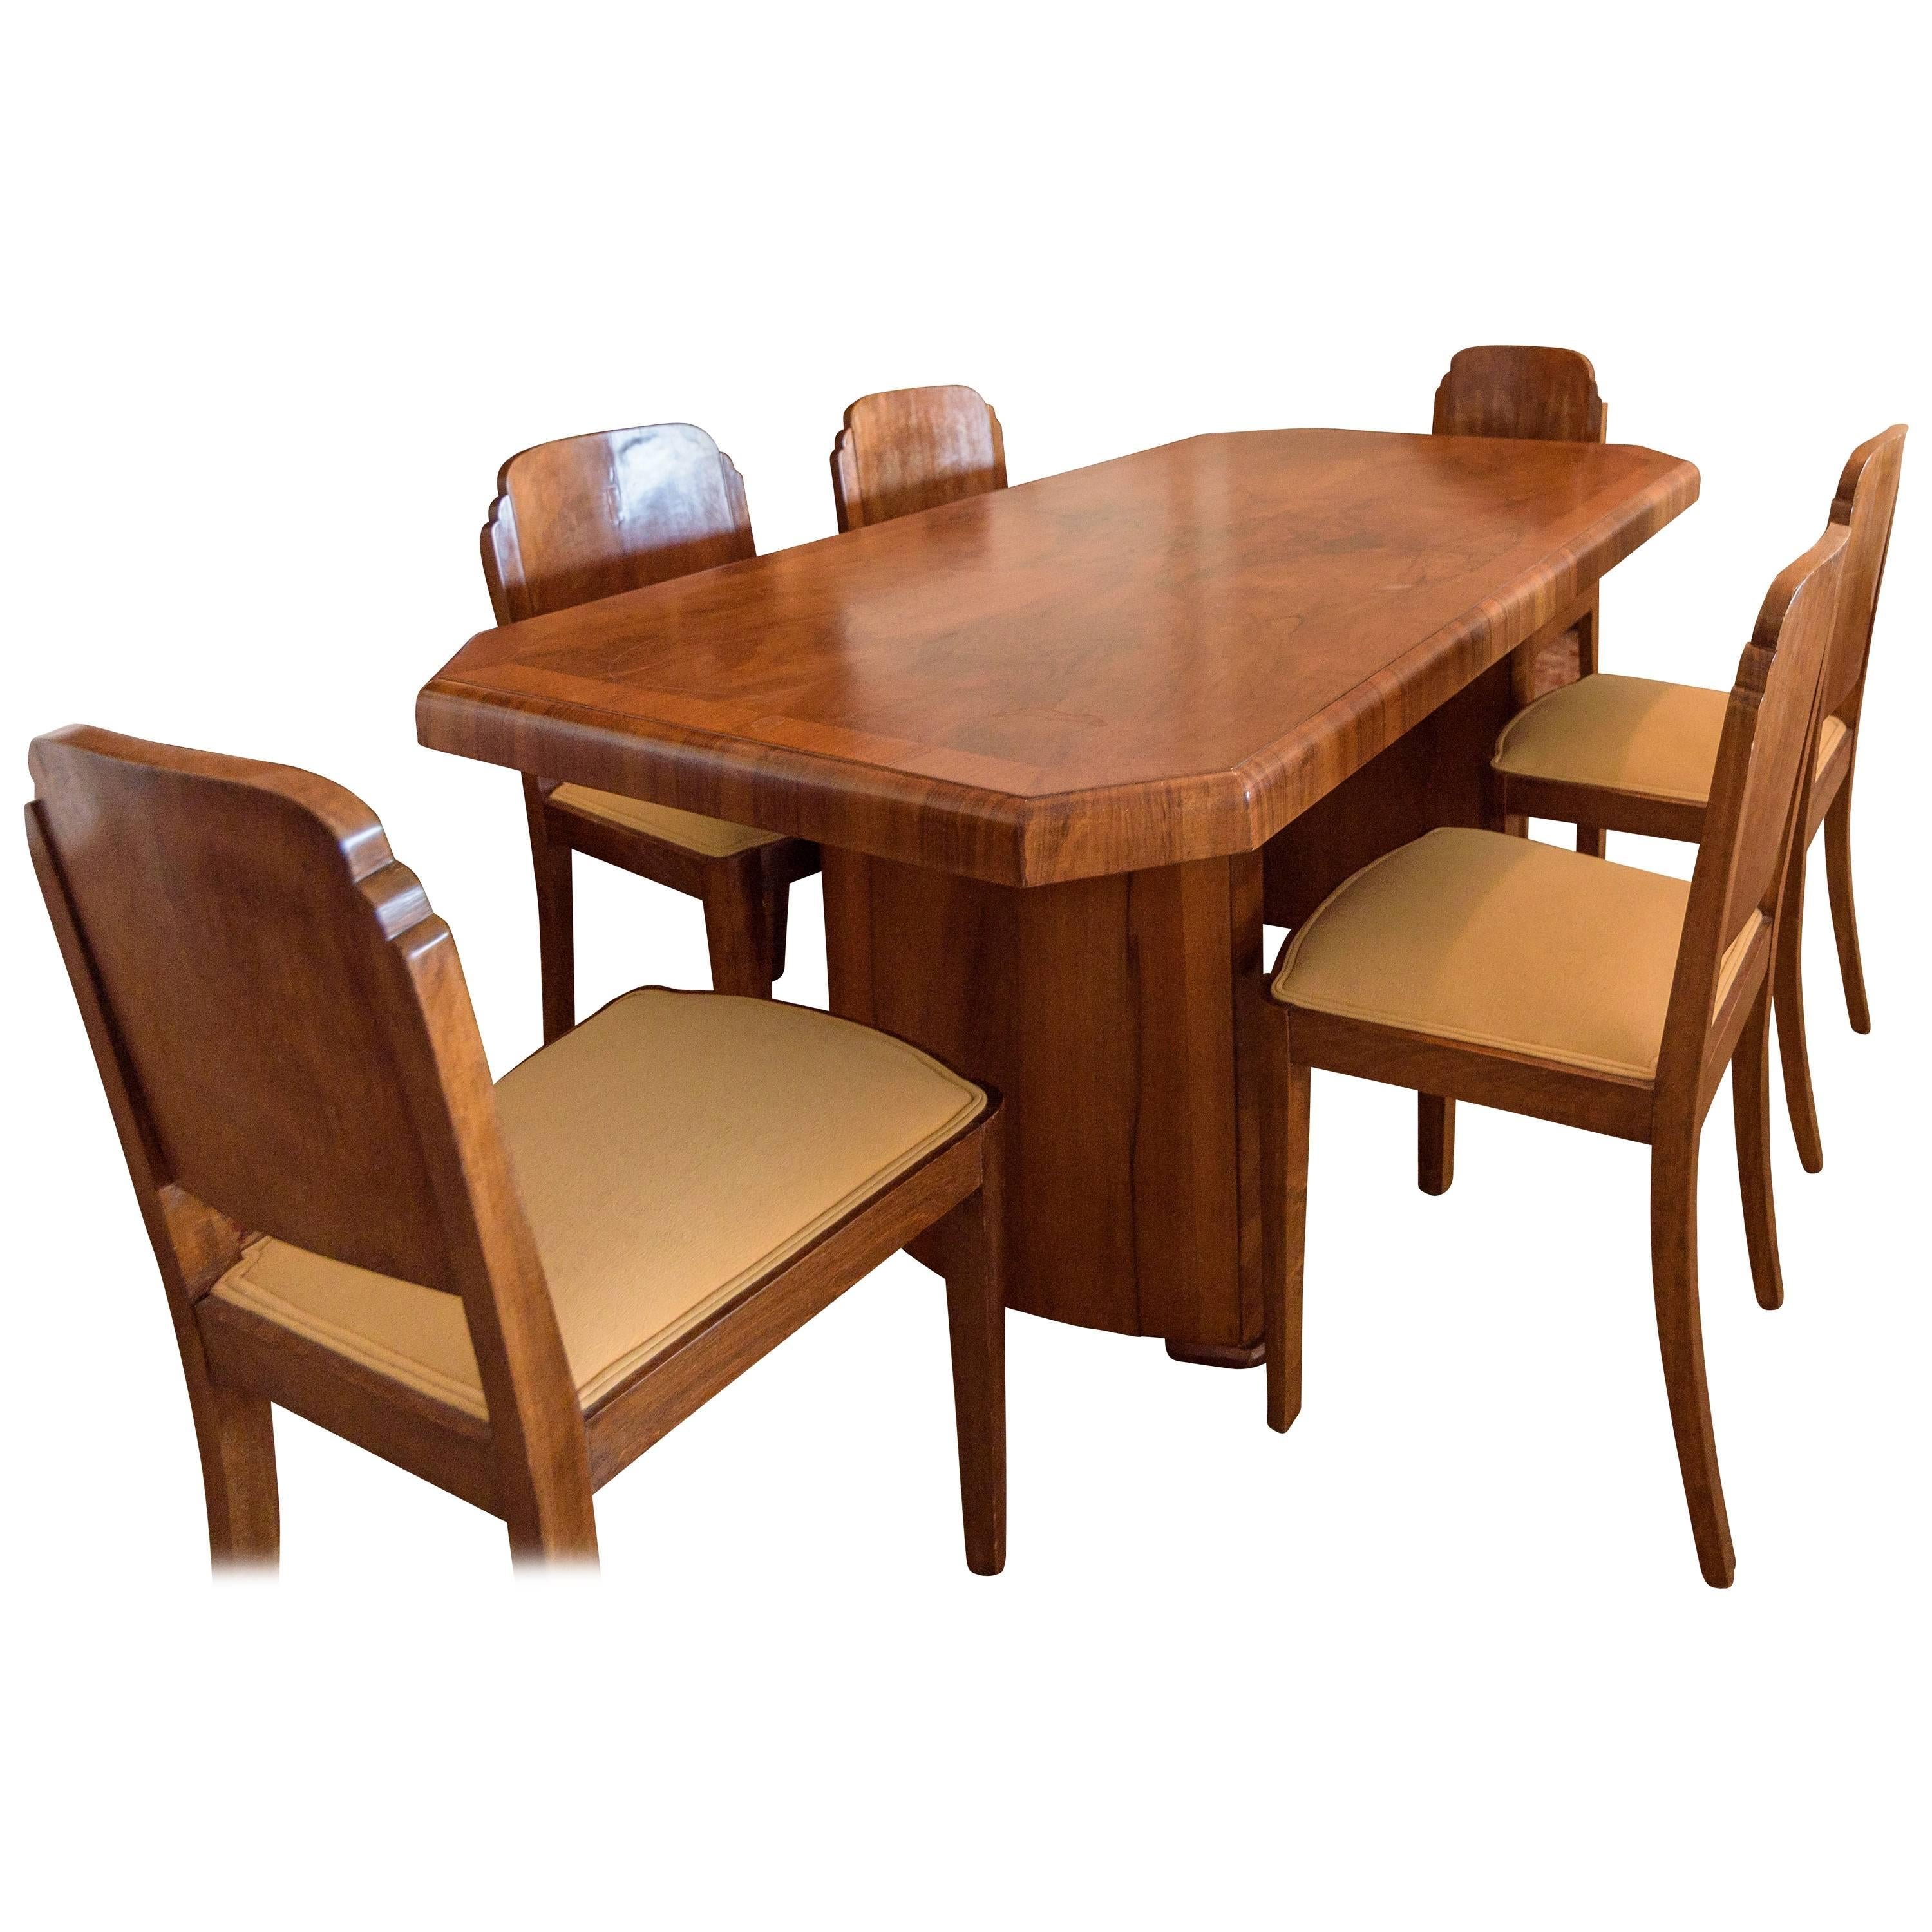 art deco dining room set walnut for sale at 1stdibs rh 1stdibs com art deco dining room set art deco round dining room table